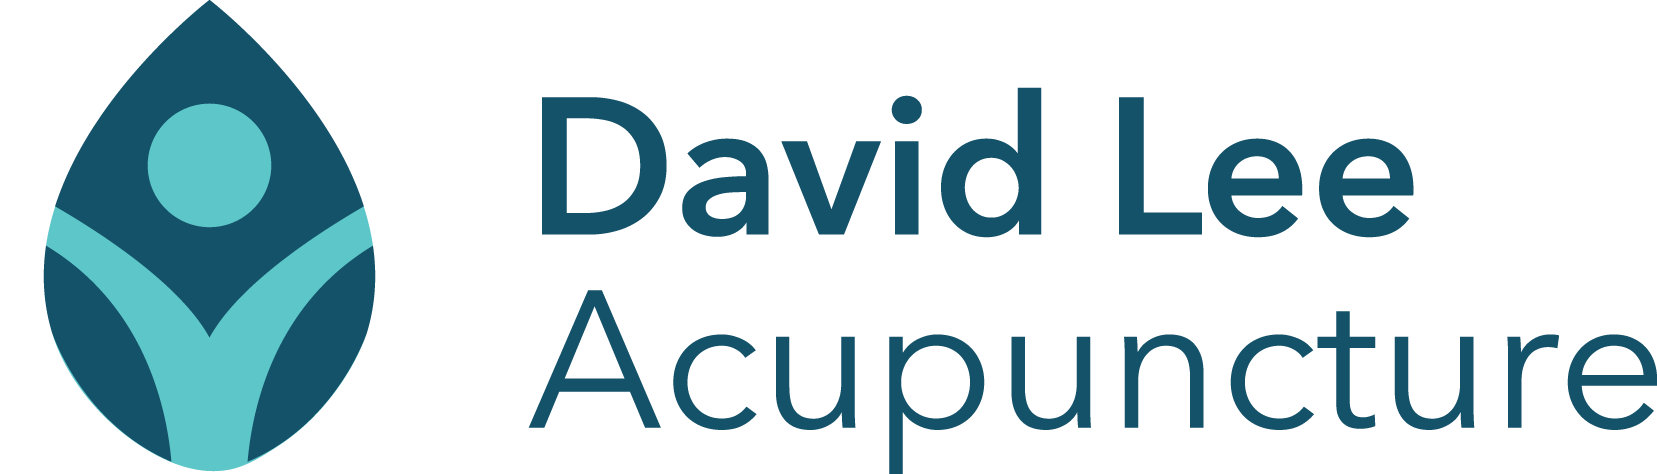 David Lee Acupuncture - Wynyard, Sydney